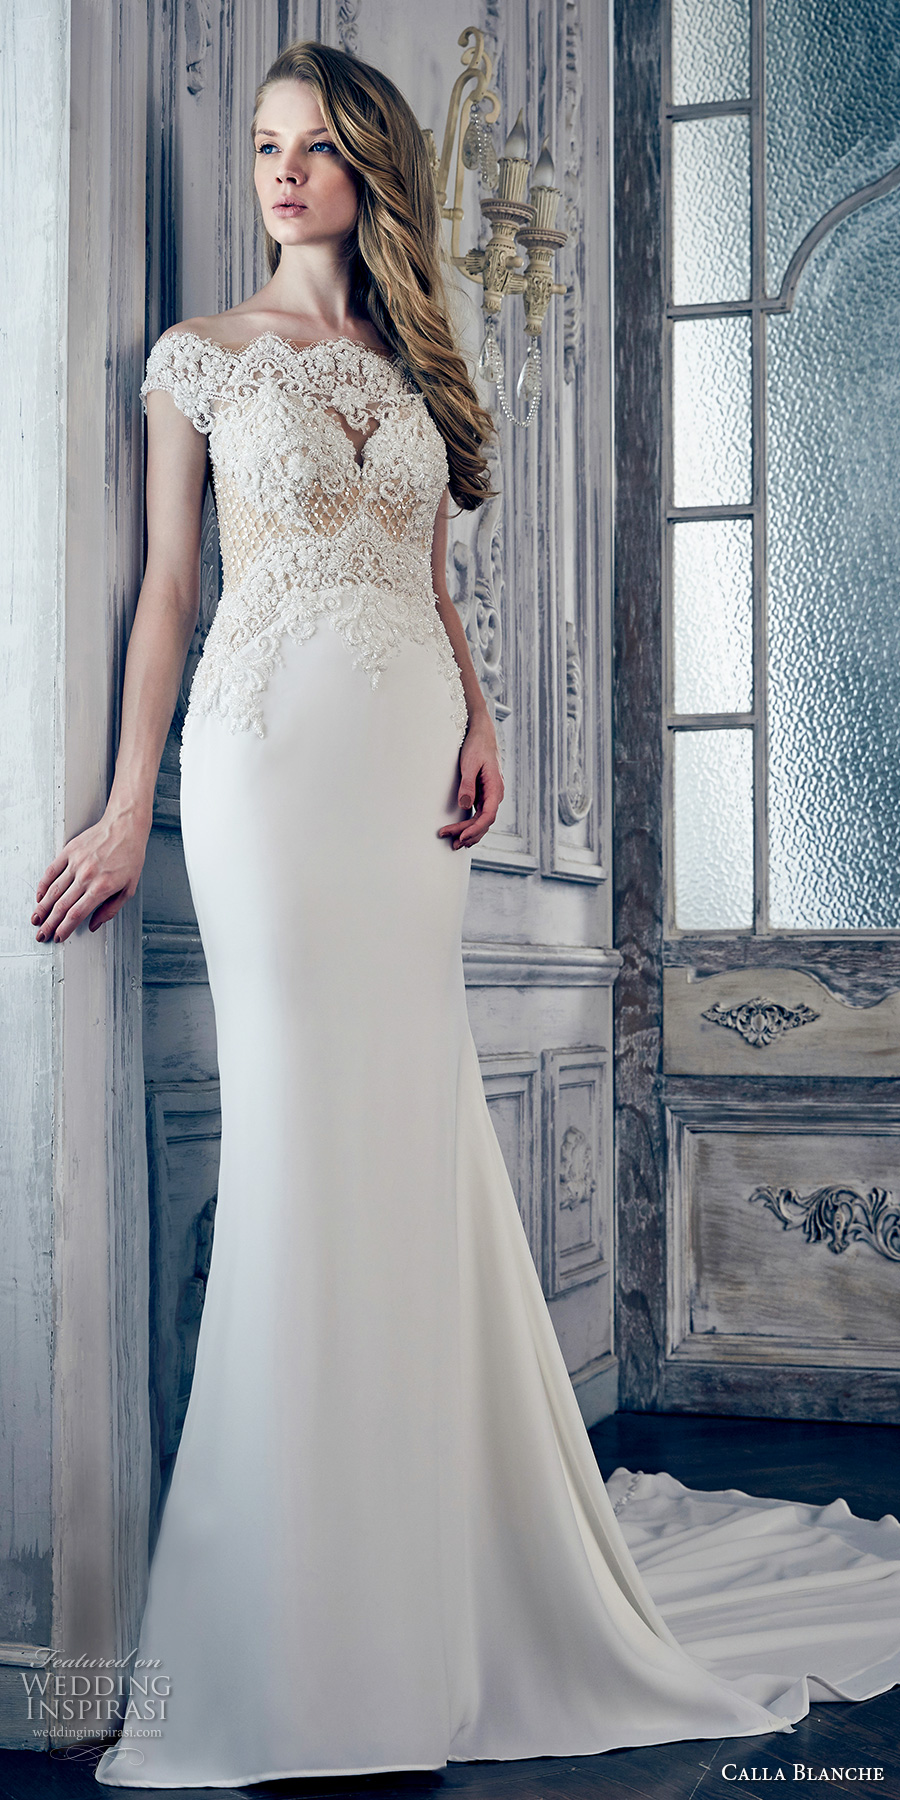 calla blanche spring 2017 bridal off the shoulder cap sleeves scallop neckline heavily embellished bodice elegant fit and flare wedding dress illusion back chapel train (17119) mv